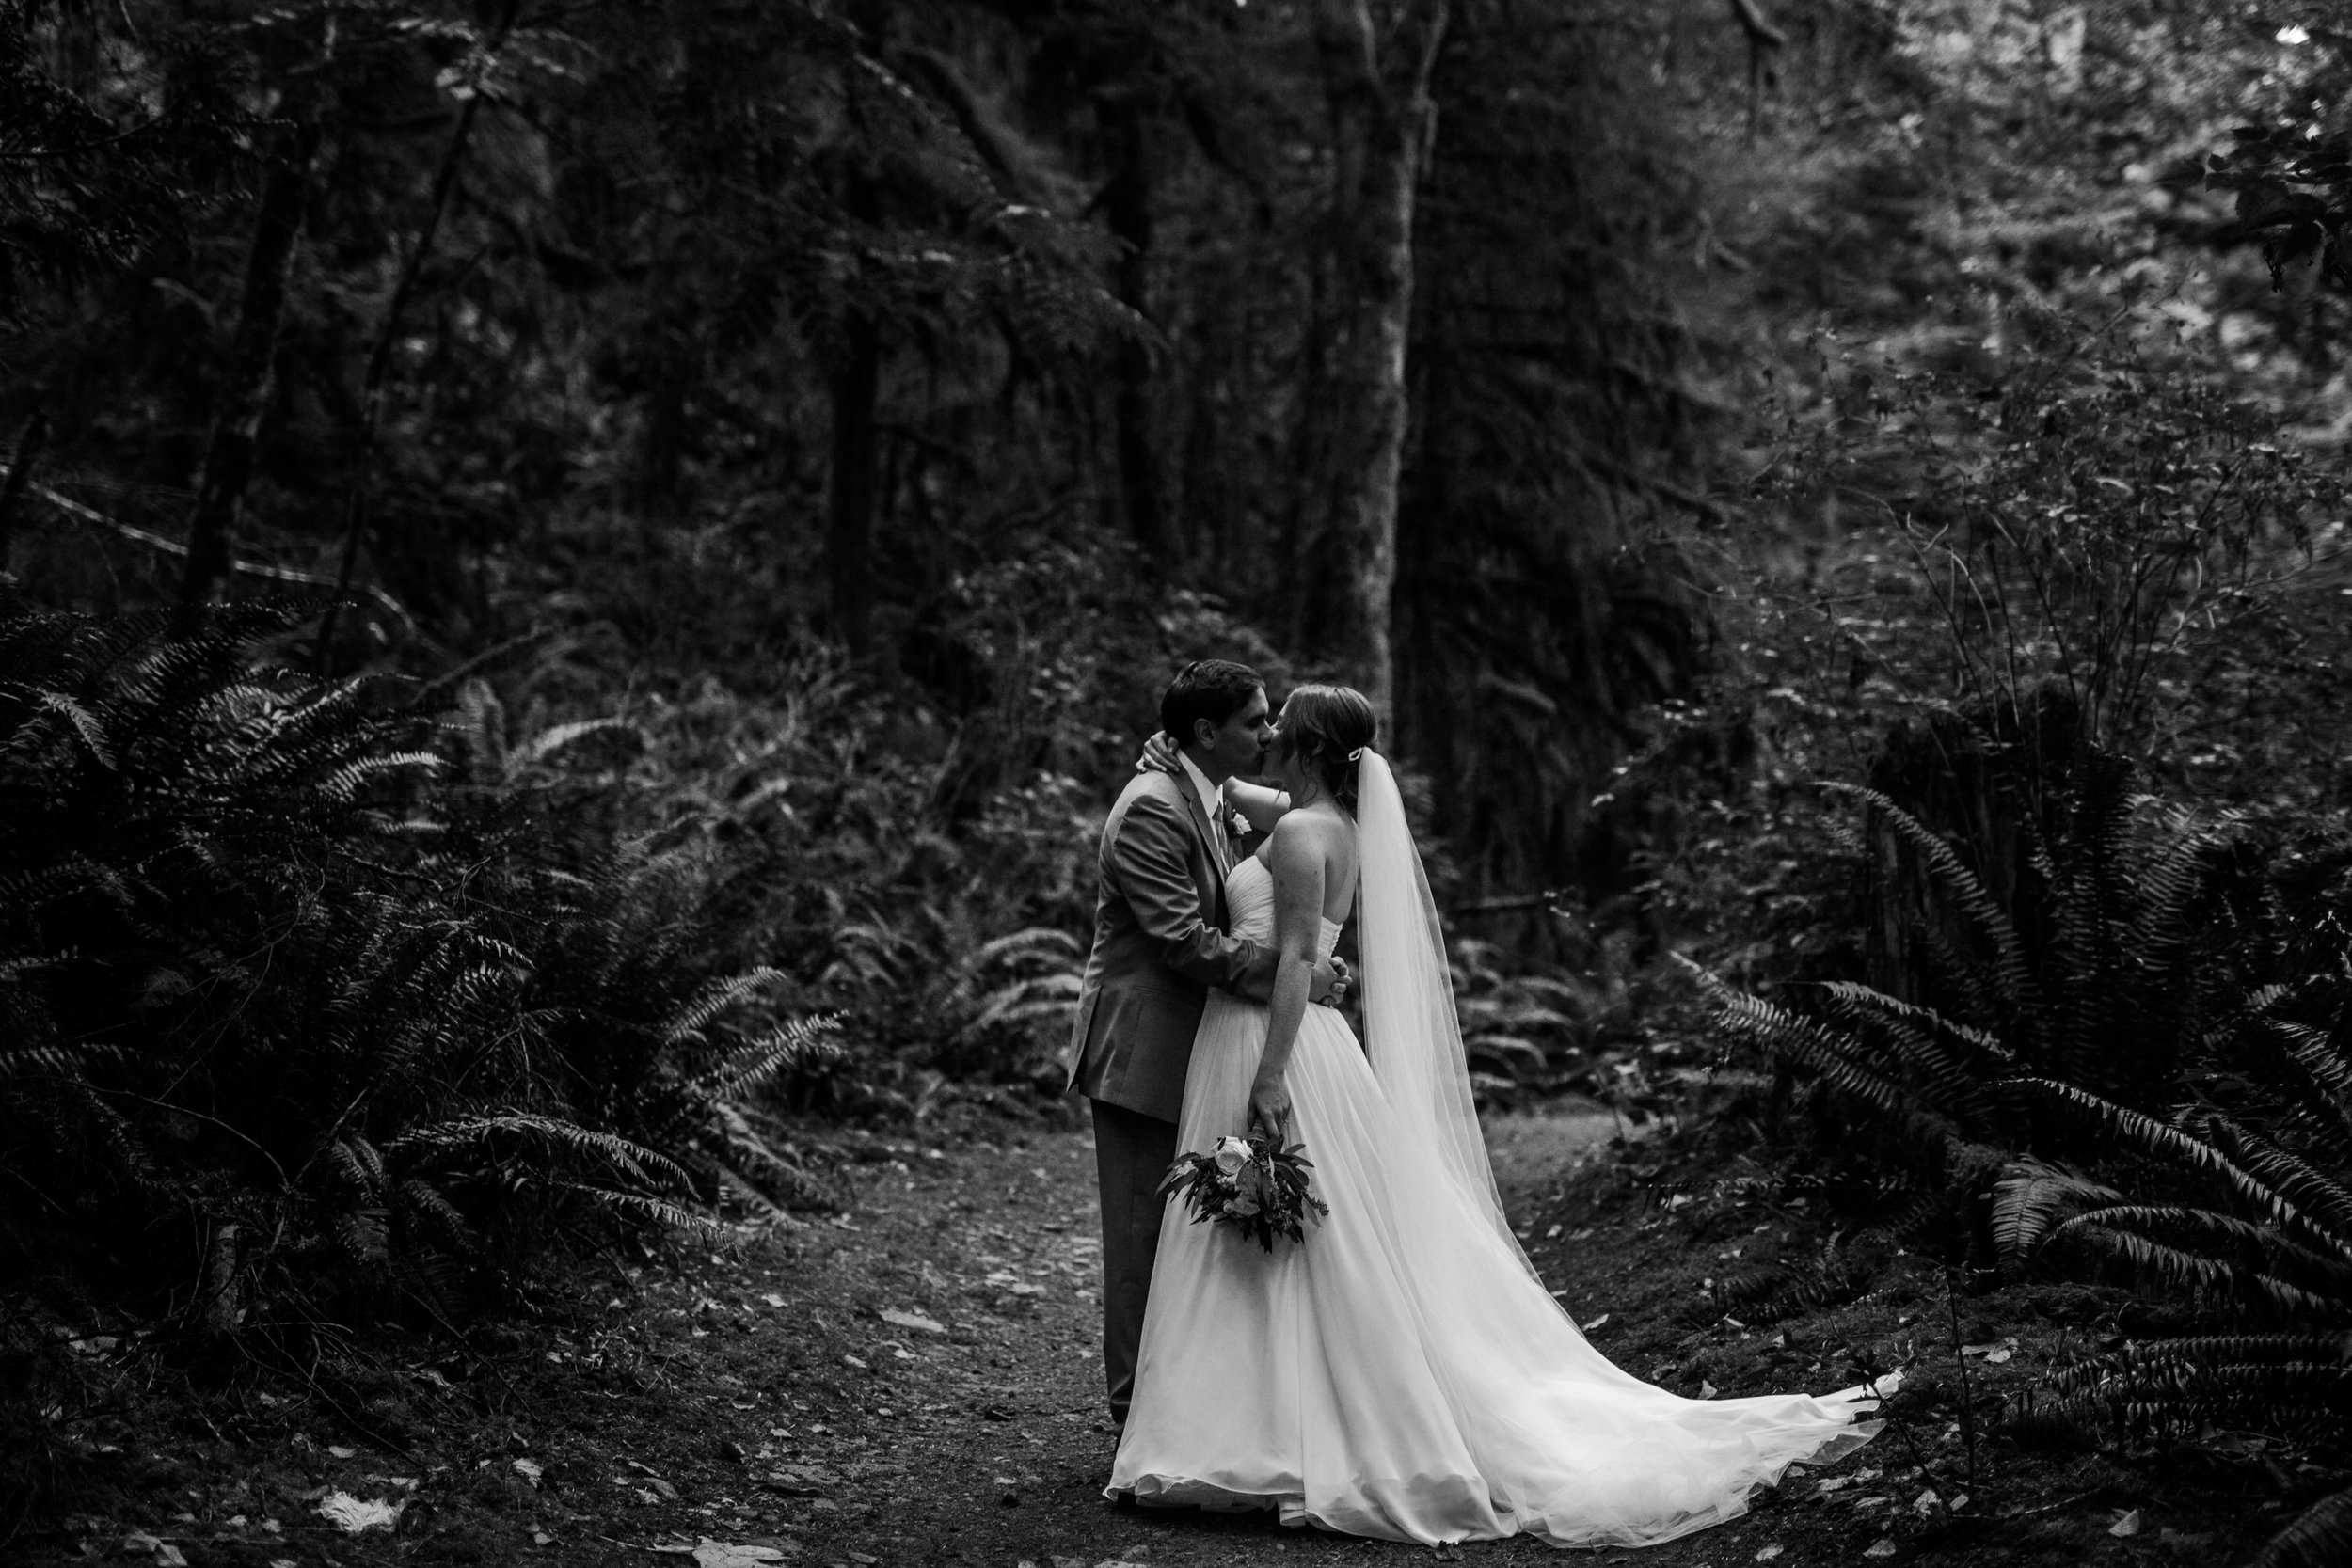 West Coast Wilderness Lodge Wedding Photos - Vancouver Wedding Photographer & Videographer - Sunshine Coast Wedding Photos - Sunshine Coast Wedding Photographer - Jennifer Picard Photography - IMG_6863.jpg